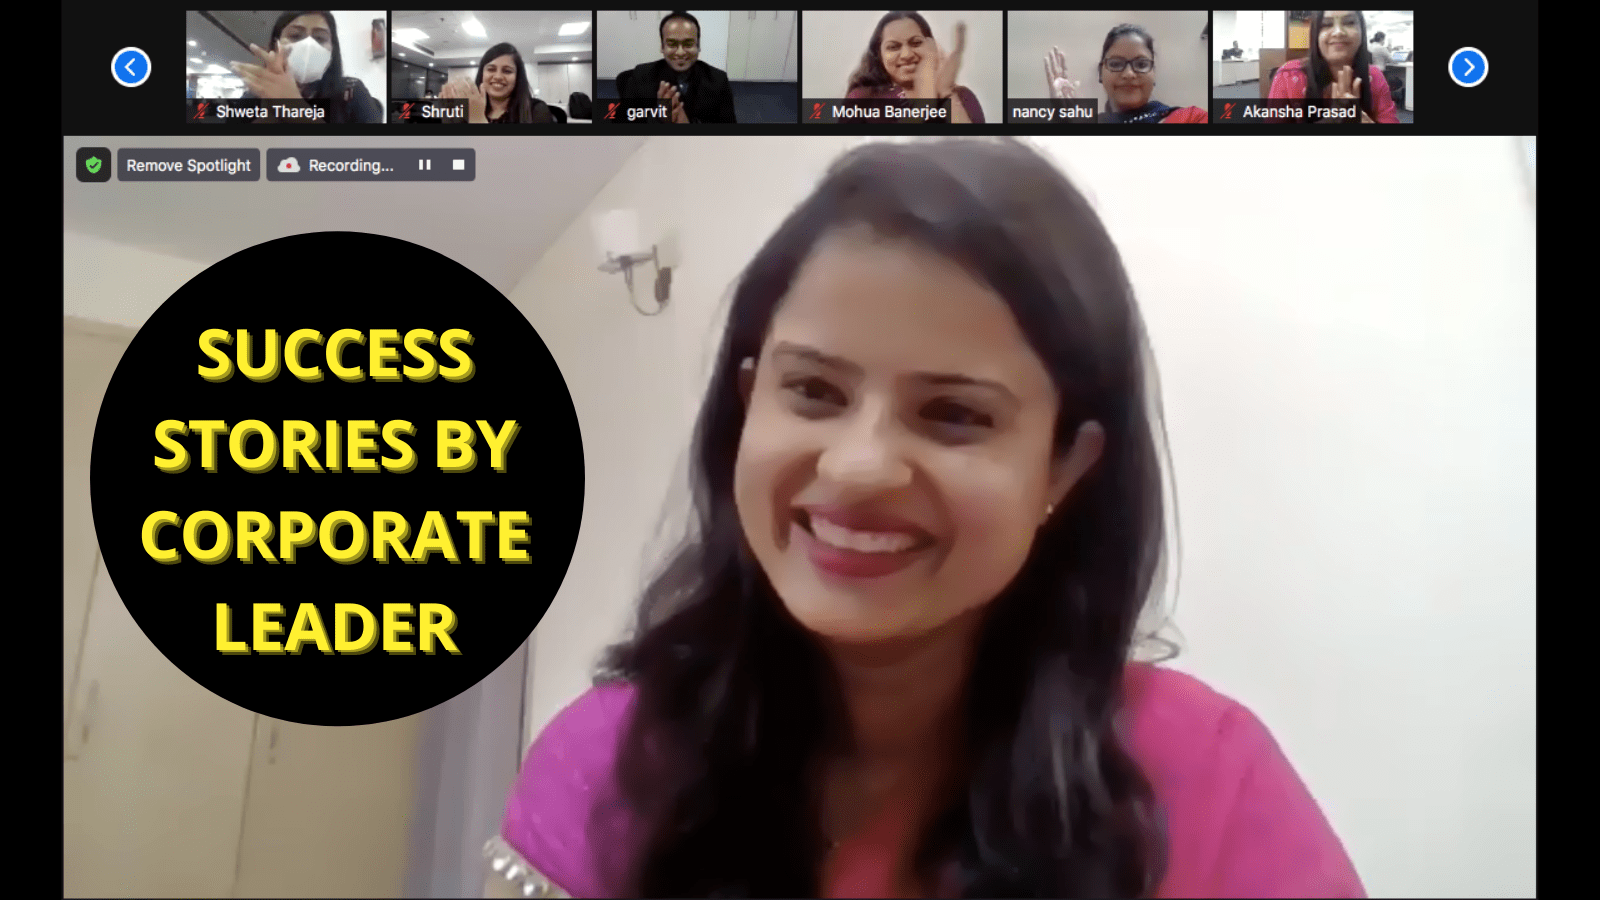 Success Stories by Corporate Leader